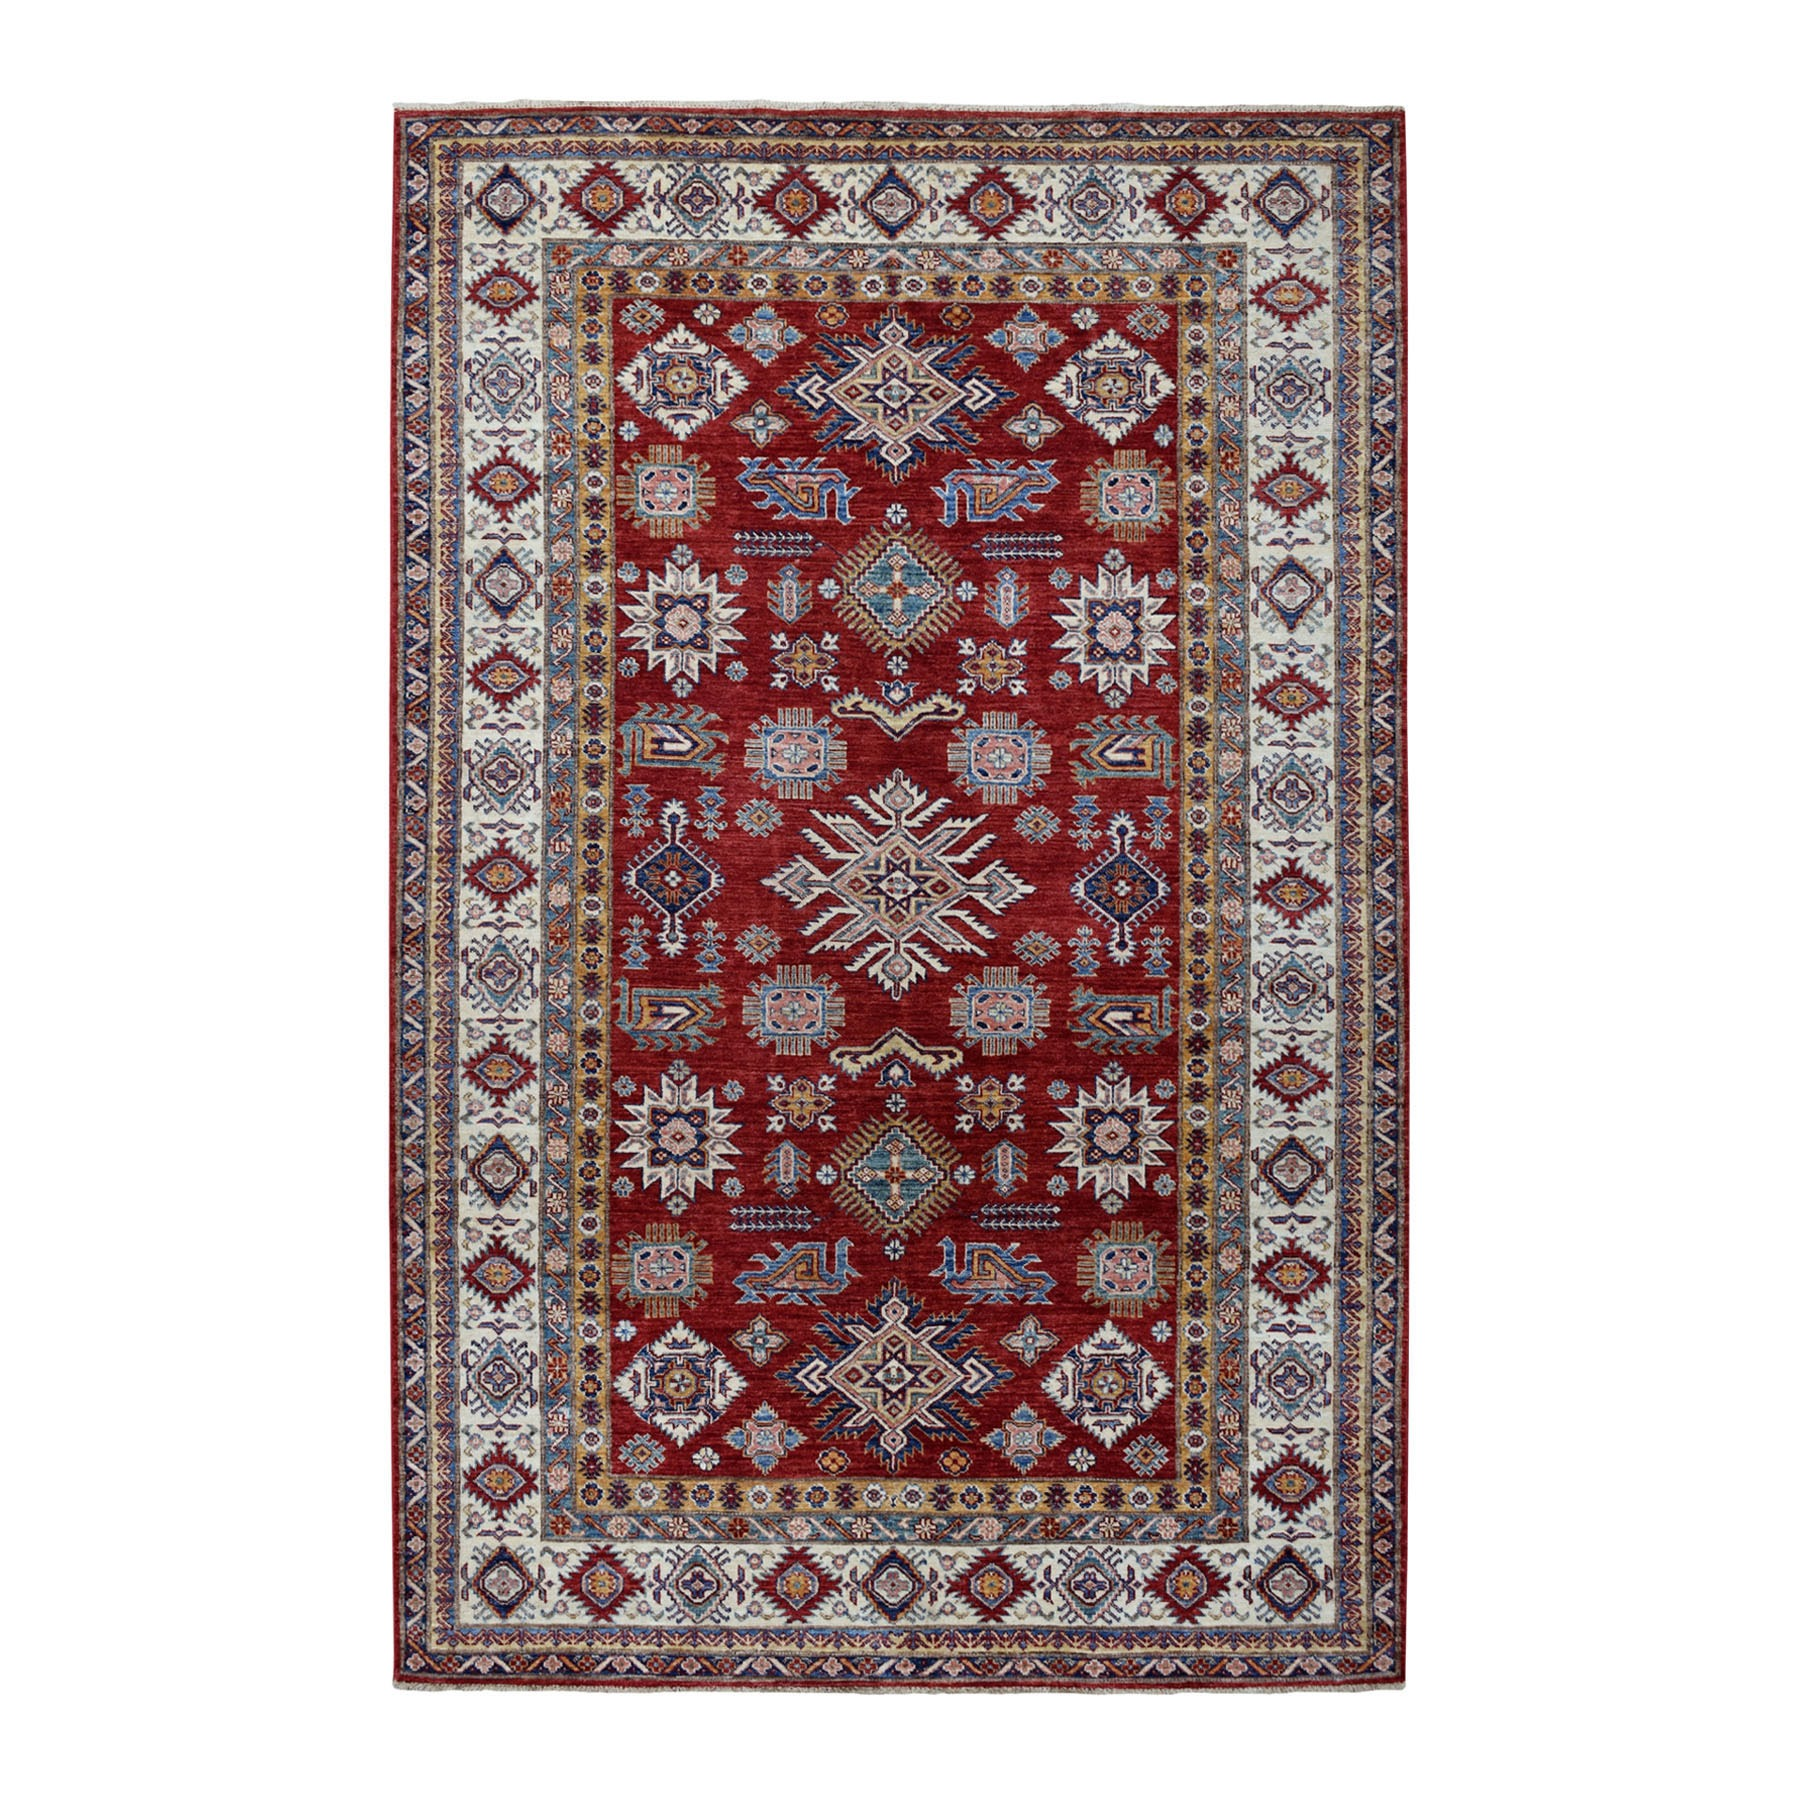 "6'3""X9'5"" Red Super Kazak Pure Wool Geometric Design Hand-Knotted Oriental Rug moaeadc0"